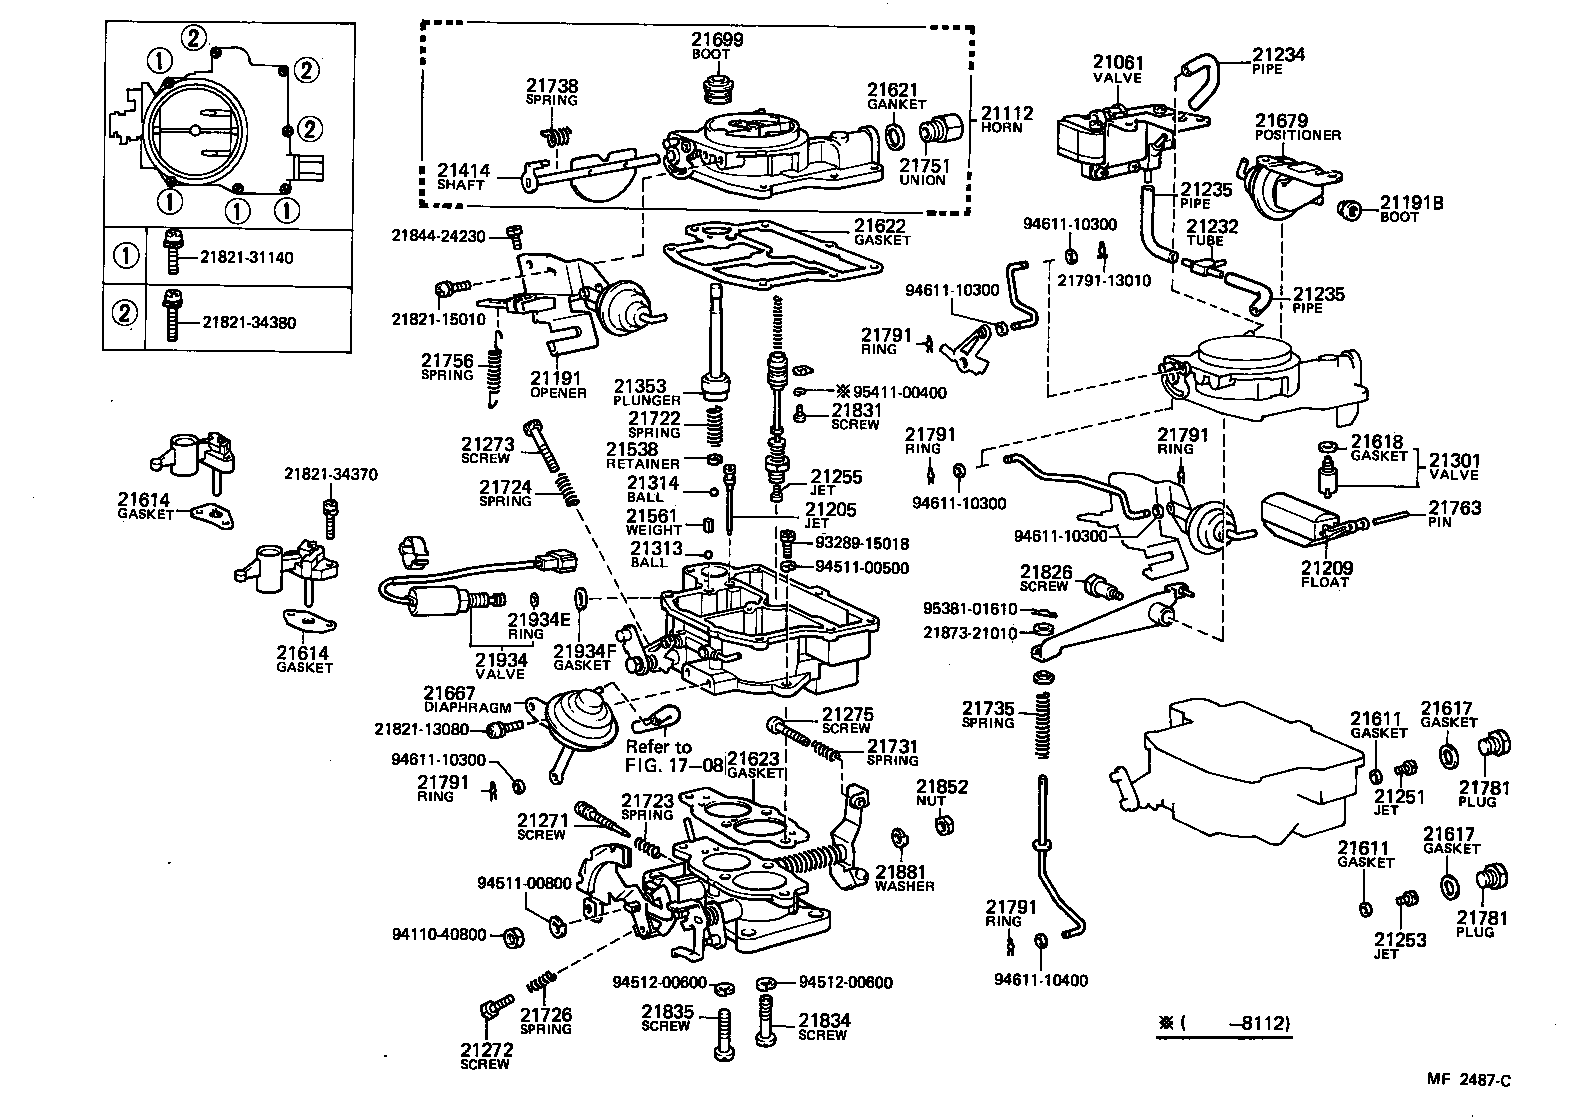 Toyota Starlet Wiring Diagram Glanza Gt Turbo Diagrams Imageresizertool